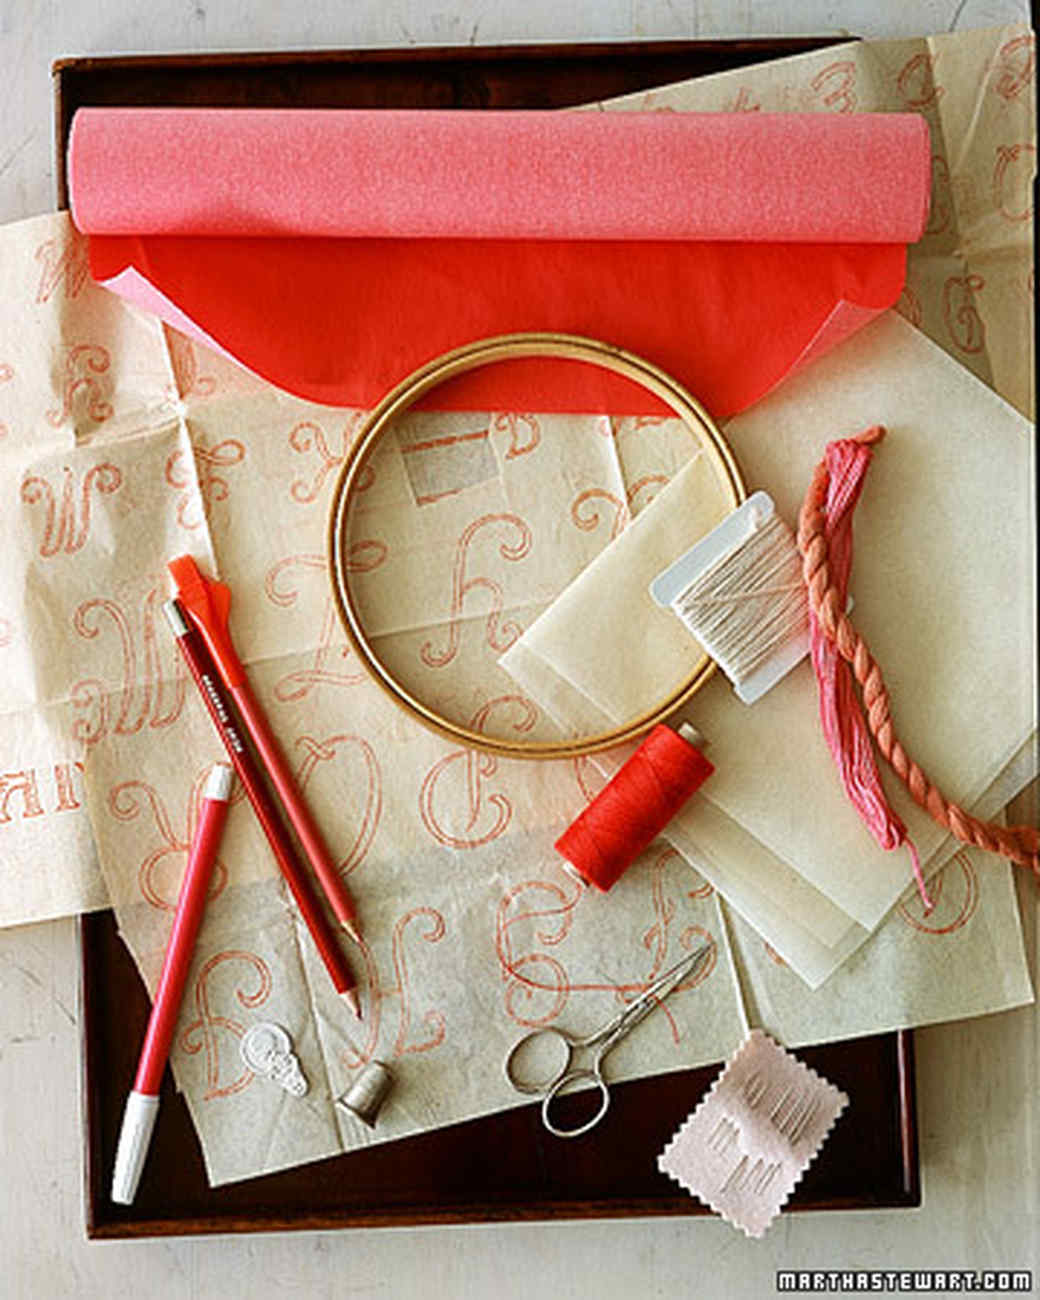 a98578_0201_embroidery5.jpg